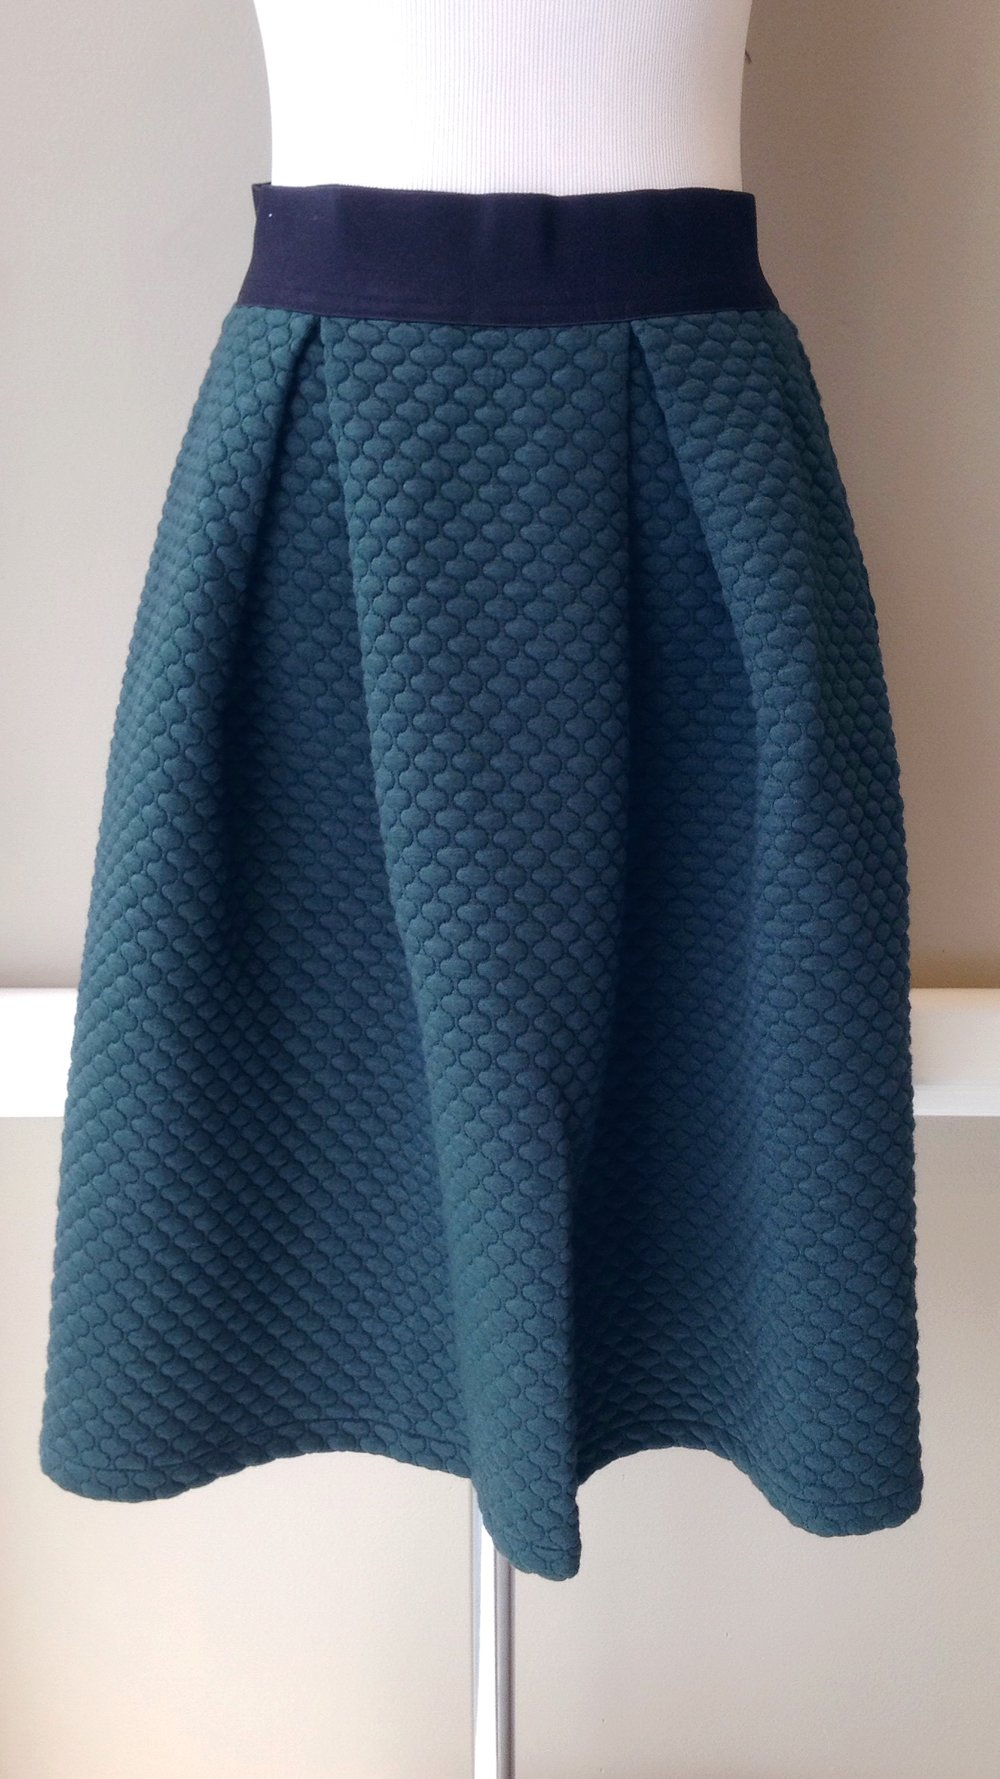 Textured knit skirt with inverted pleats and elastic waistband in hunter green, $38